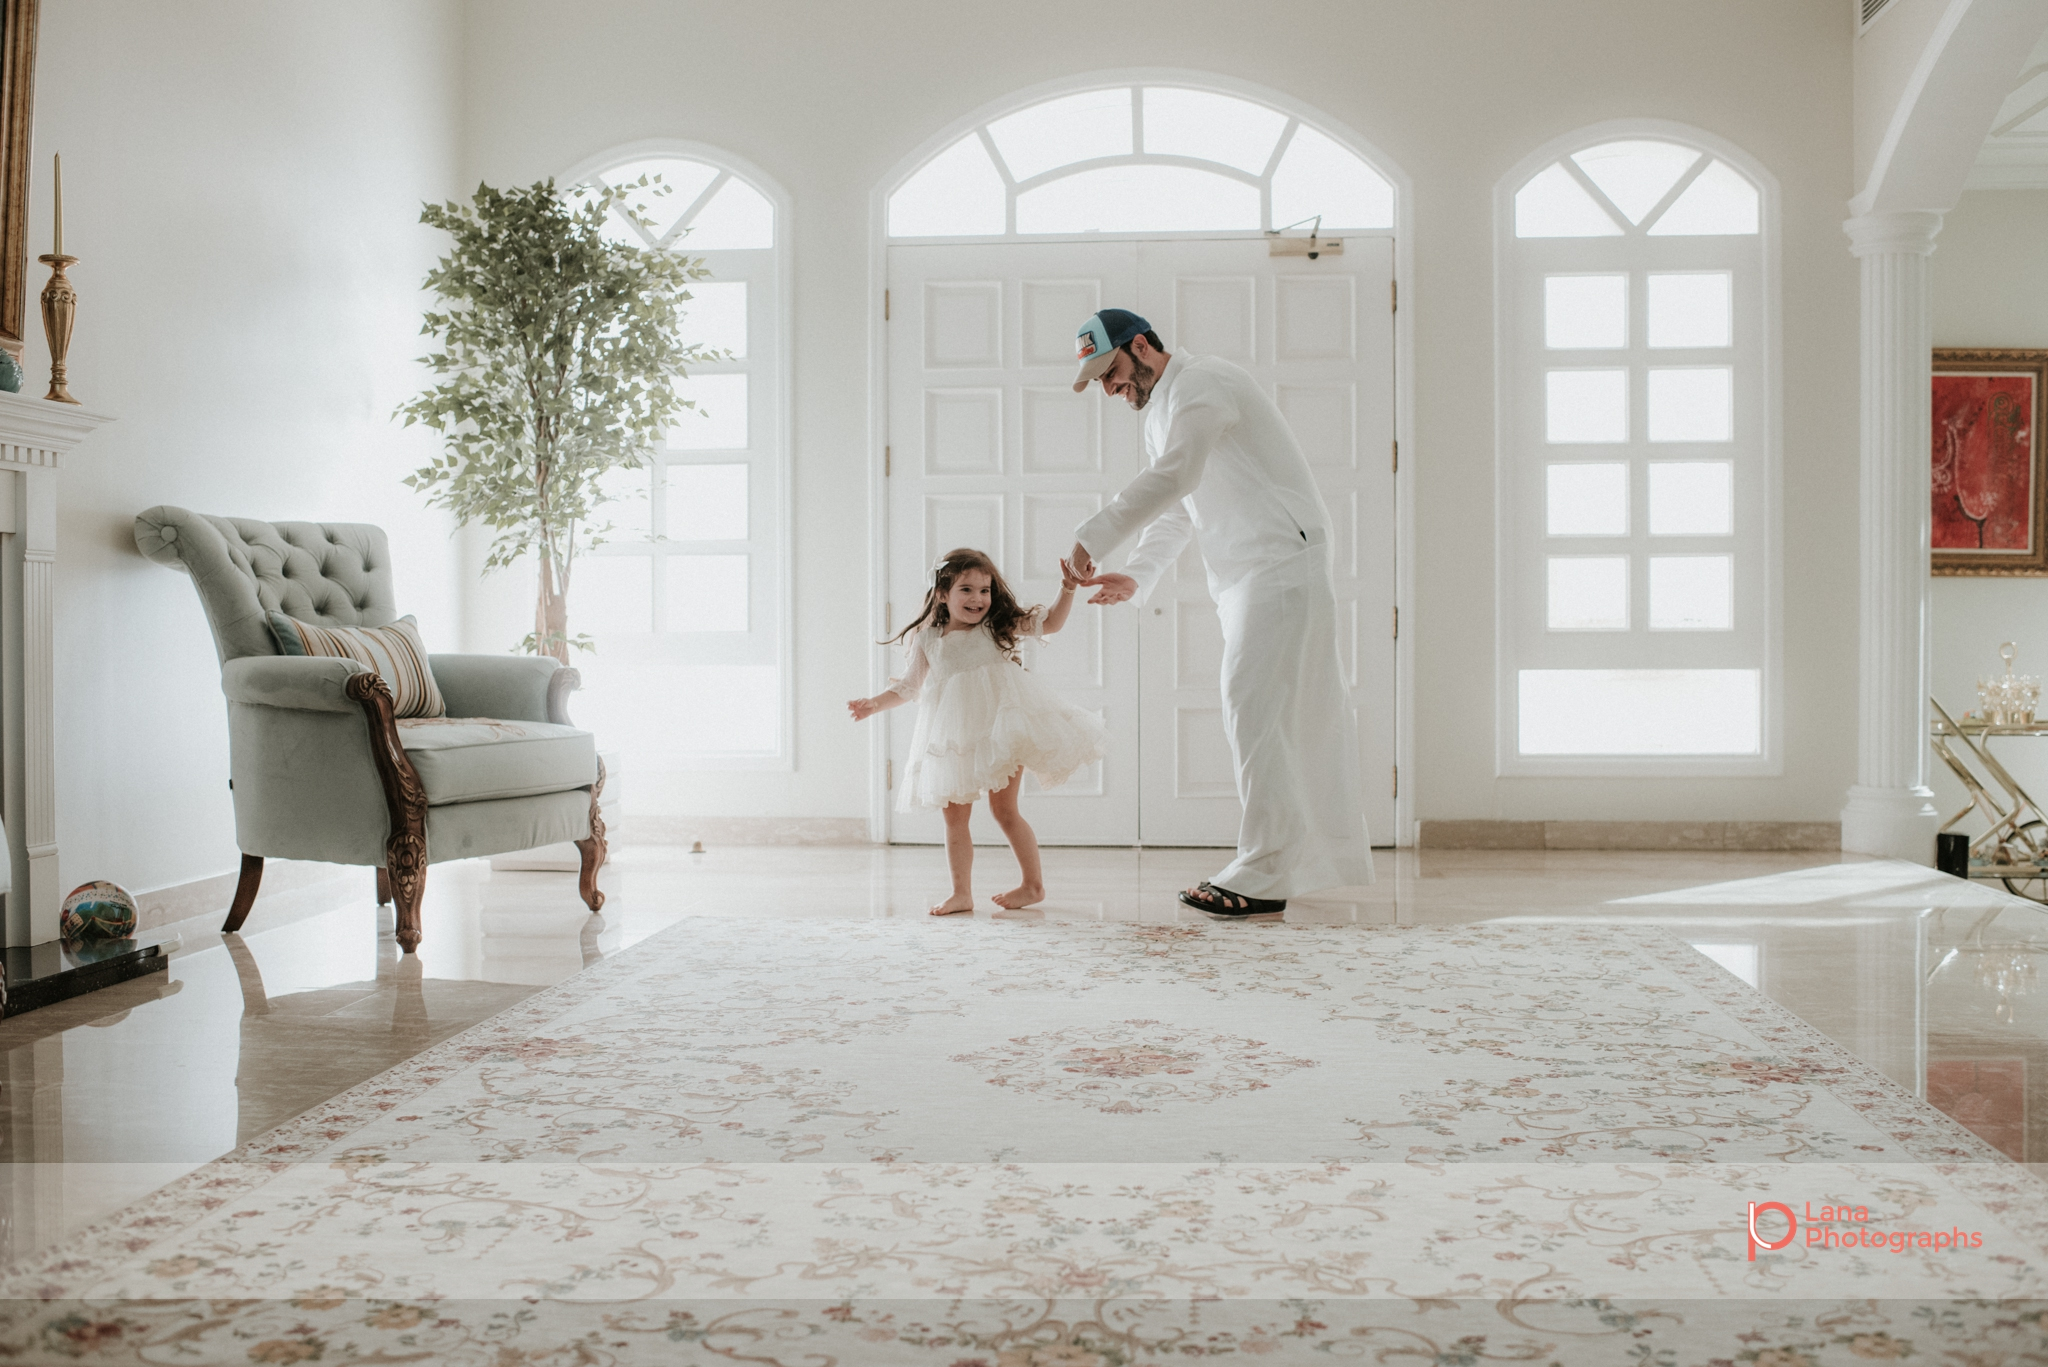 Lana Photographs Family Photographer Dubai Top Family Photographers father twirling his daughter